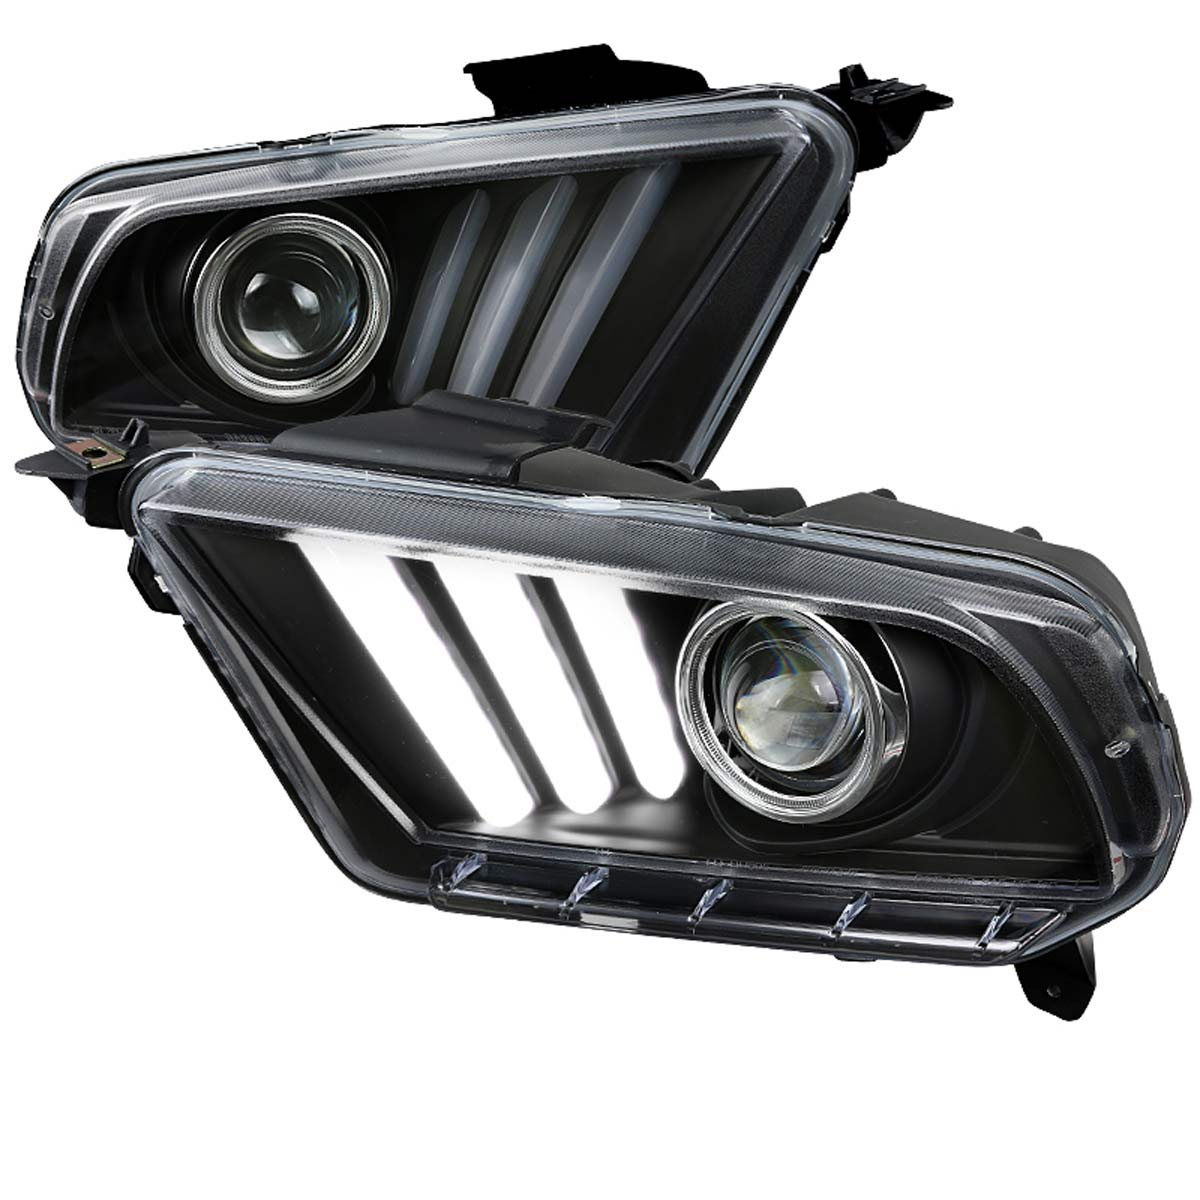 2010 2014 ford mustang sequential led drl bar projector headlights black 64 2010 2014 ford mustang sequential led drl bar projector headlights